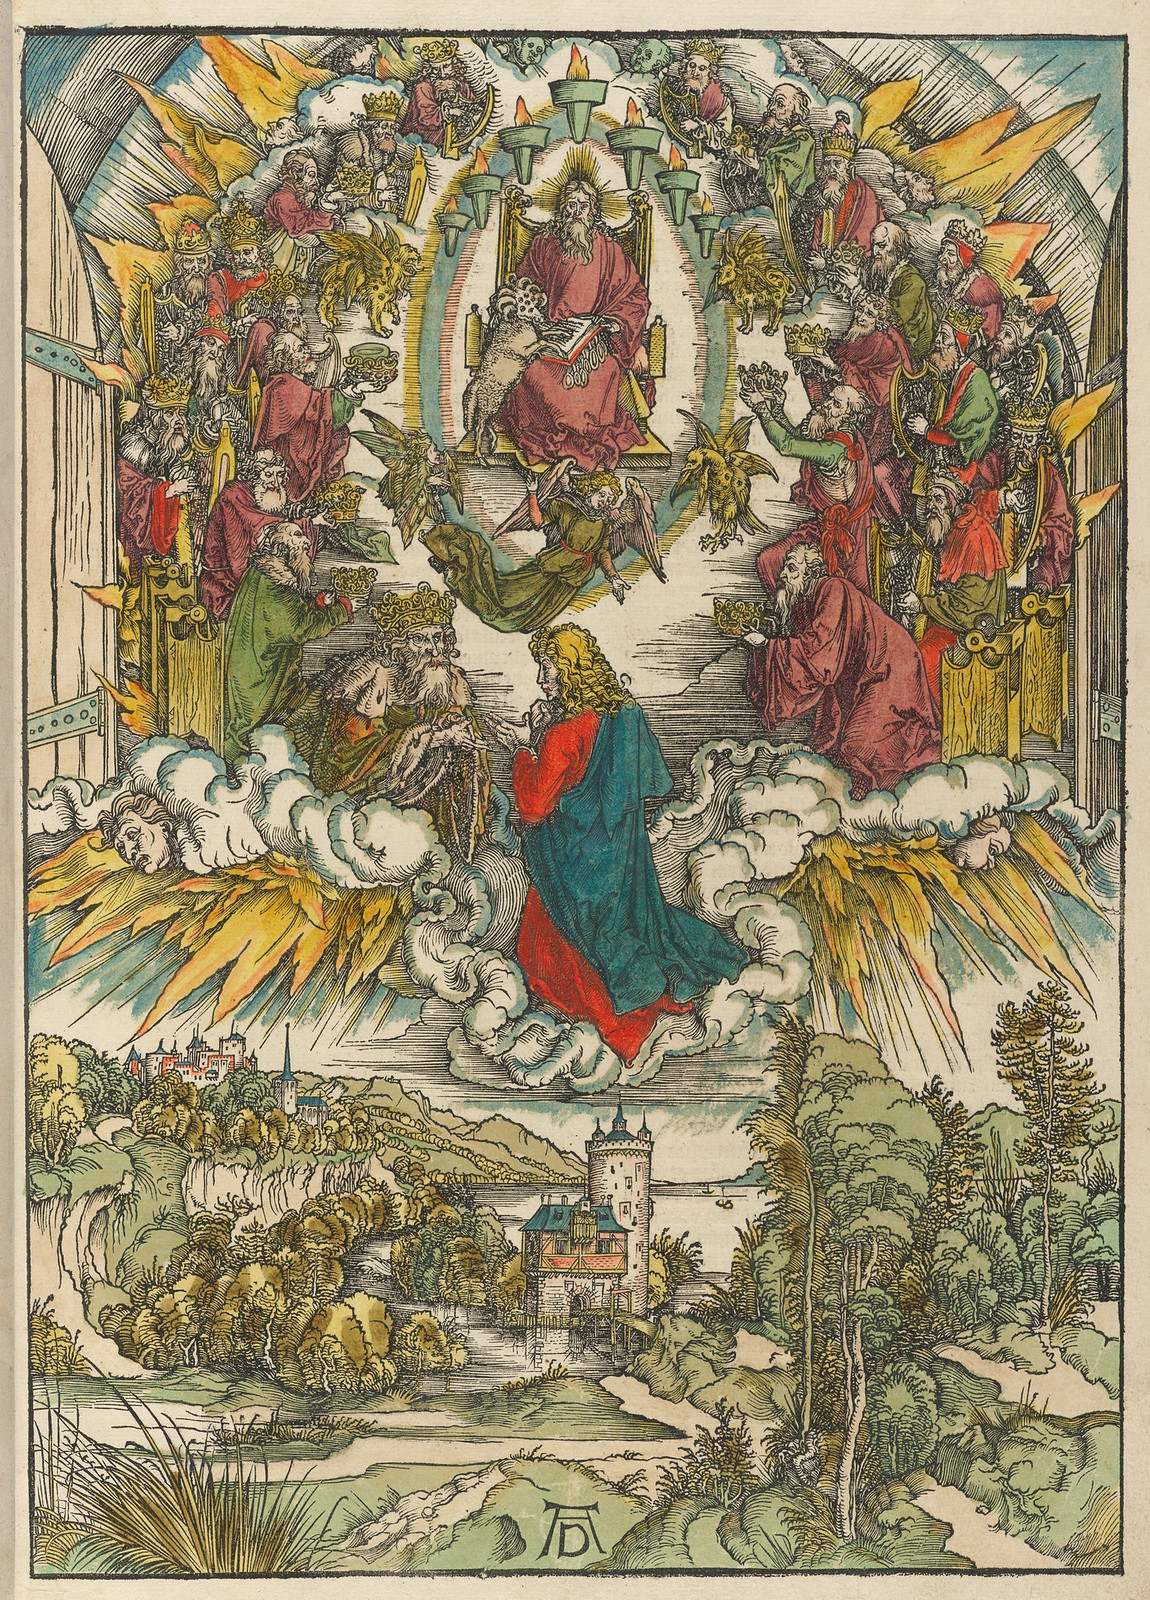 Albrecht Dürer - St John before God and the elders, Plate three of fifteen from the Latin edition of The Apocalypse series, hand colored, printed 1511